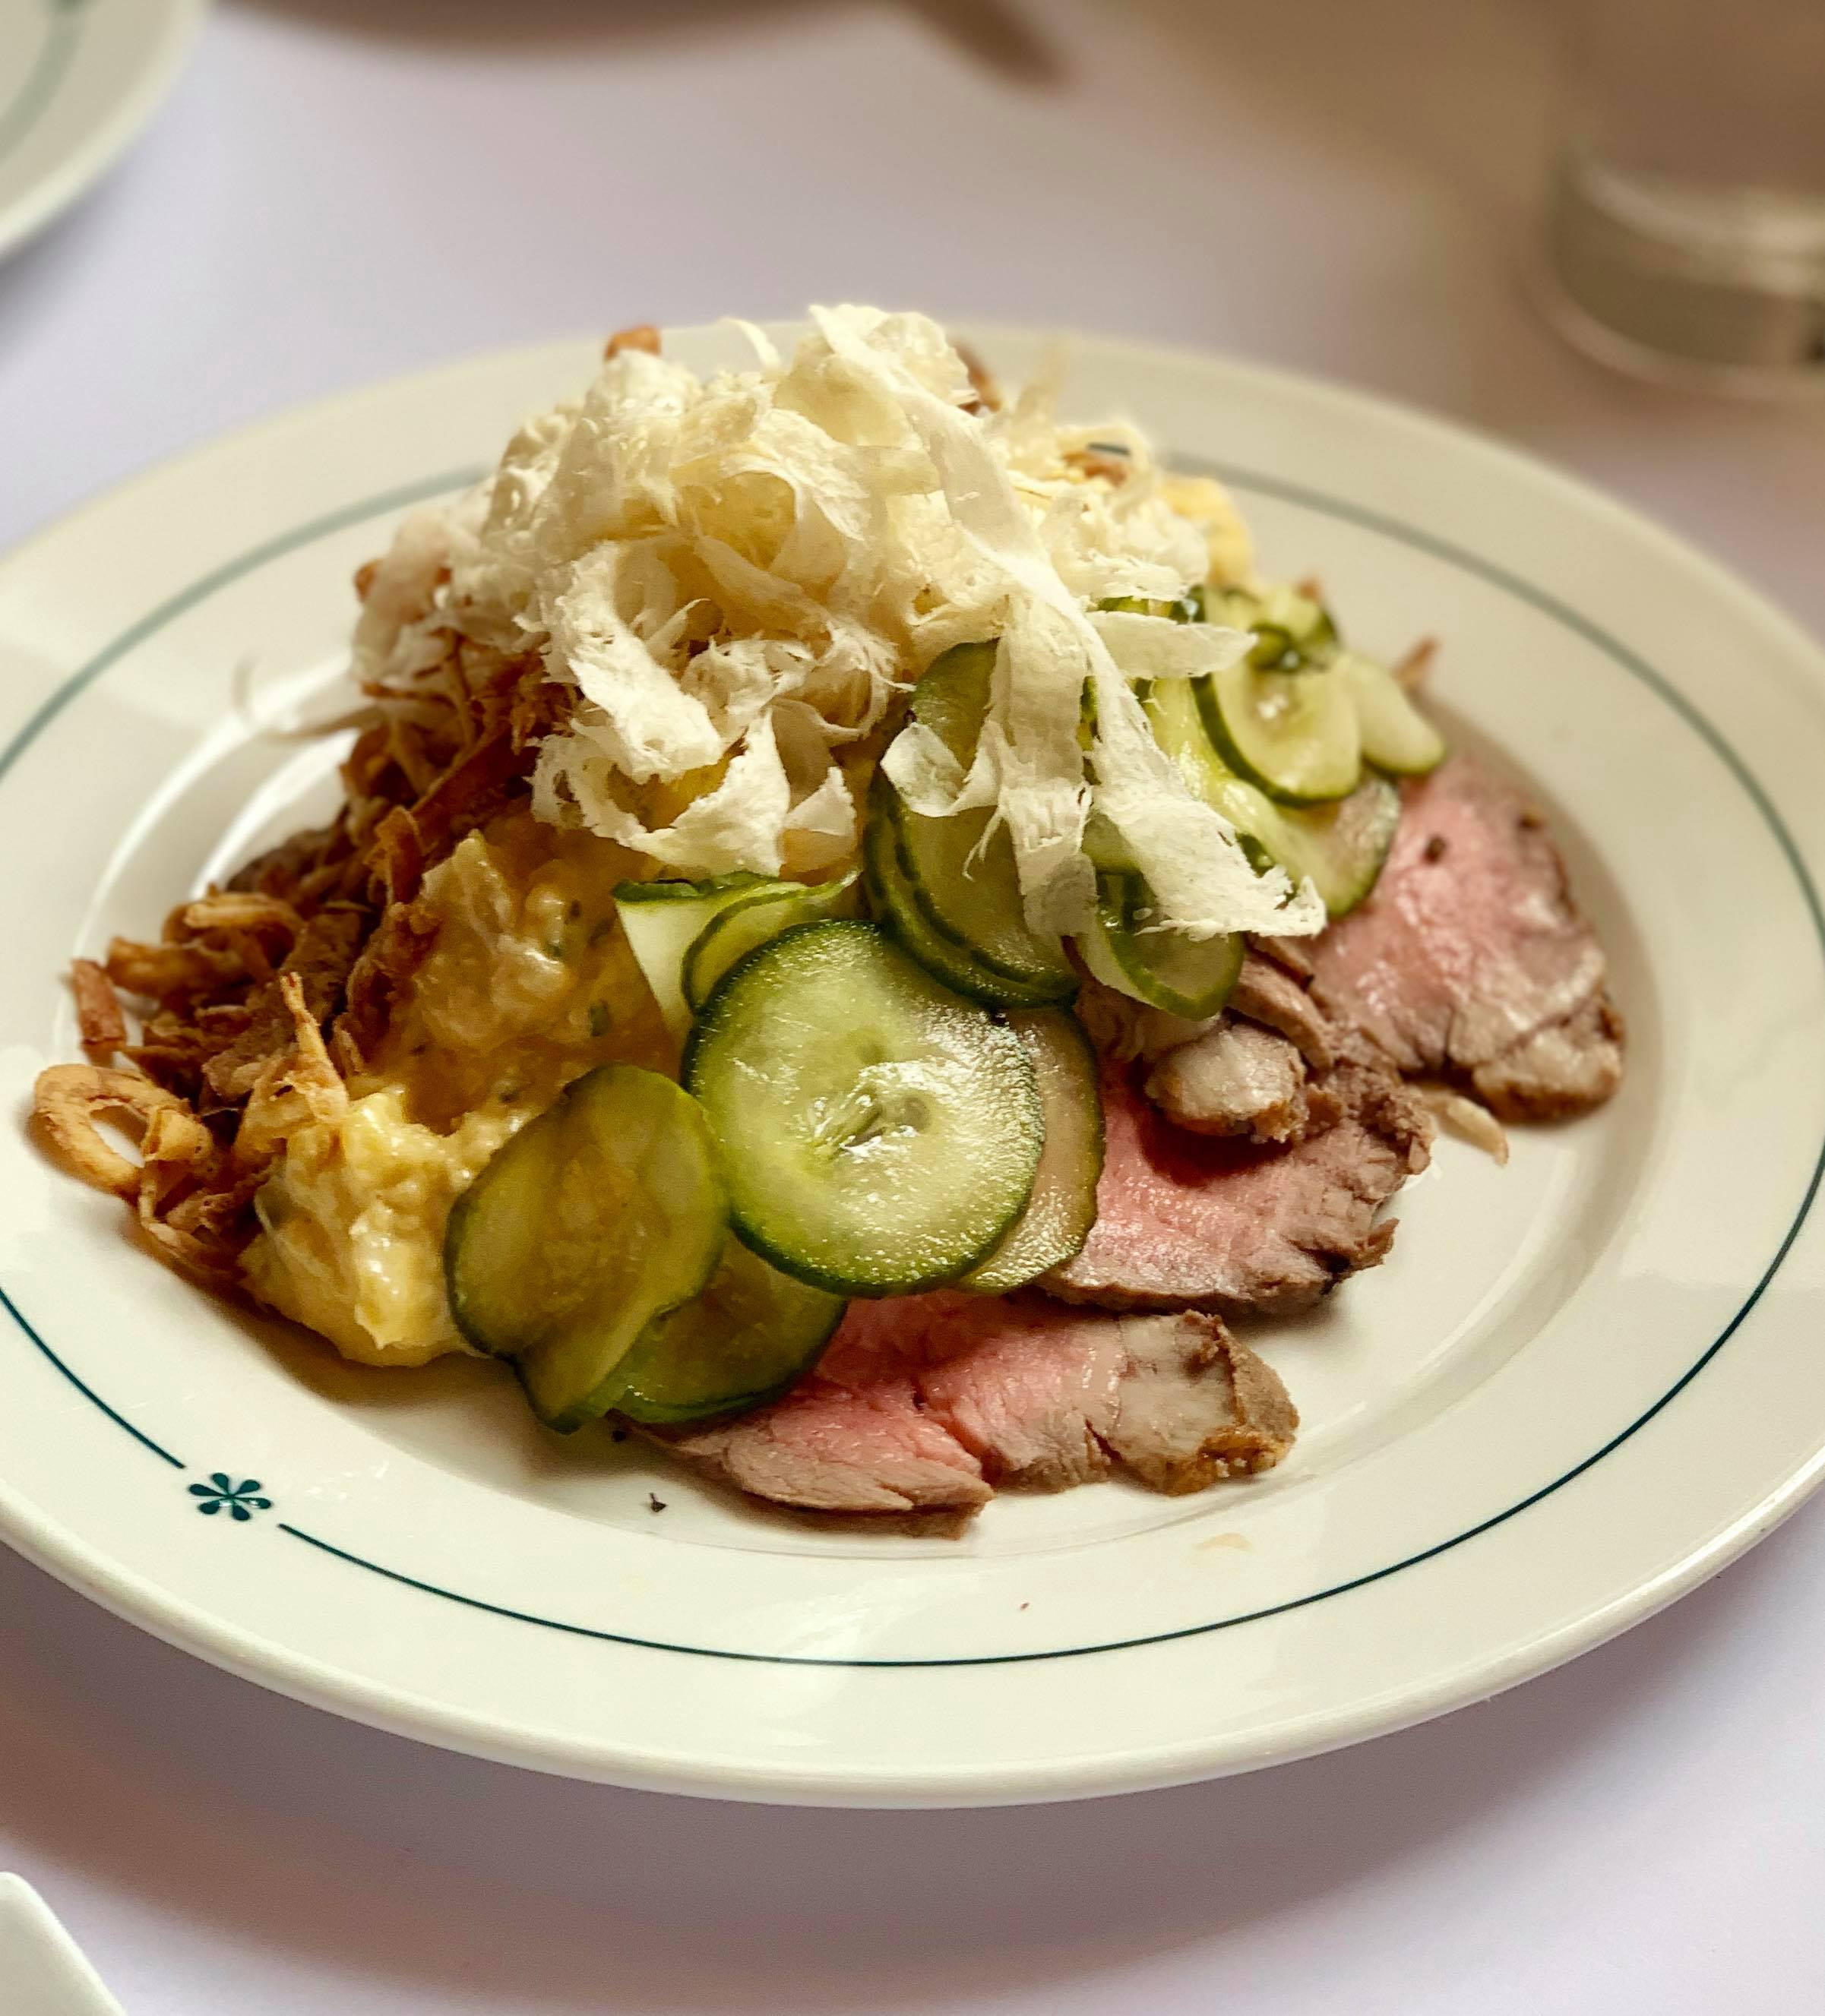 - Roastbeefwith remoulade, grated horseradish, cucumber salad and crispy onions